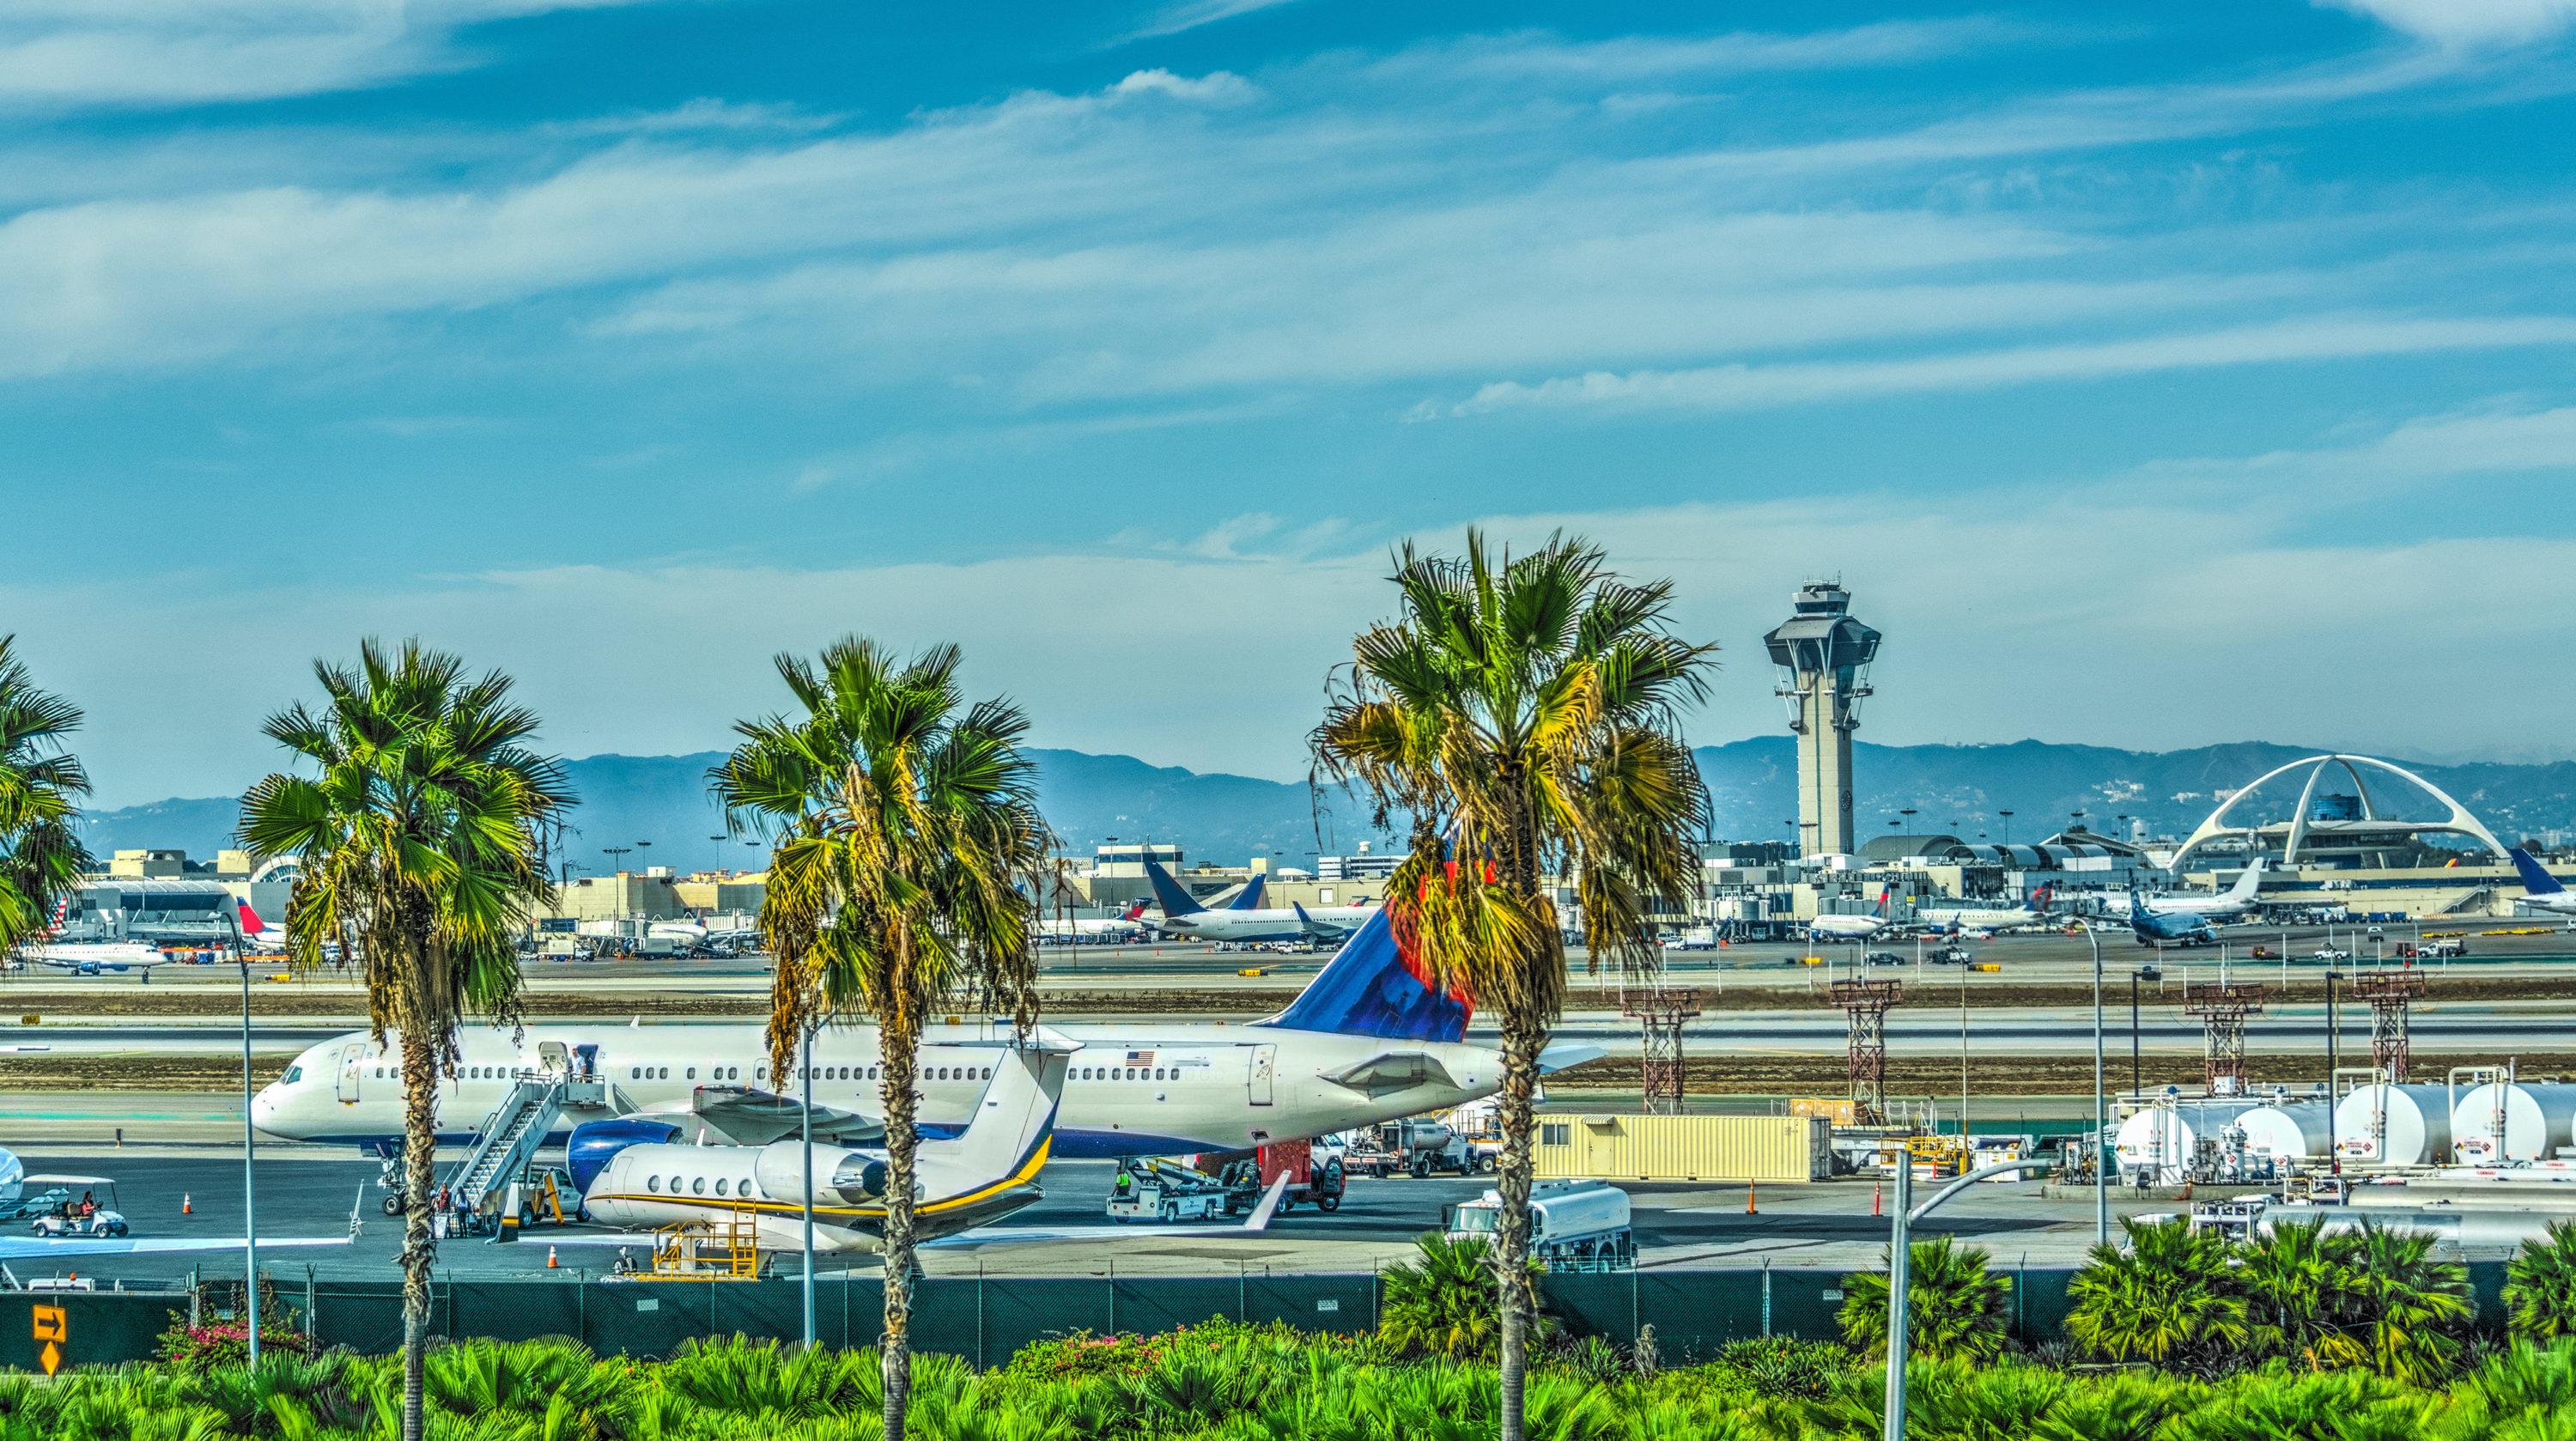 Los Angeles International Airport - What Travelers Need To